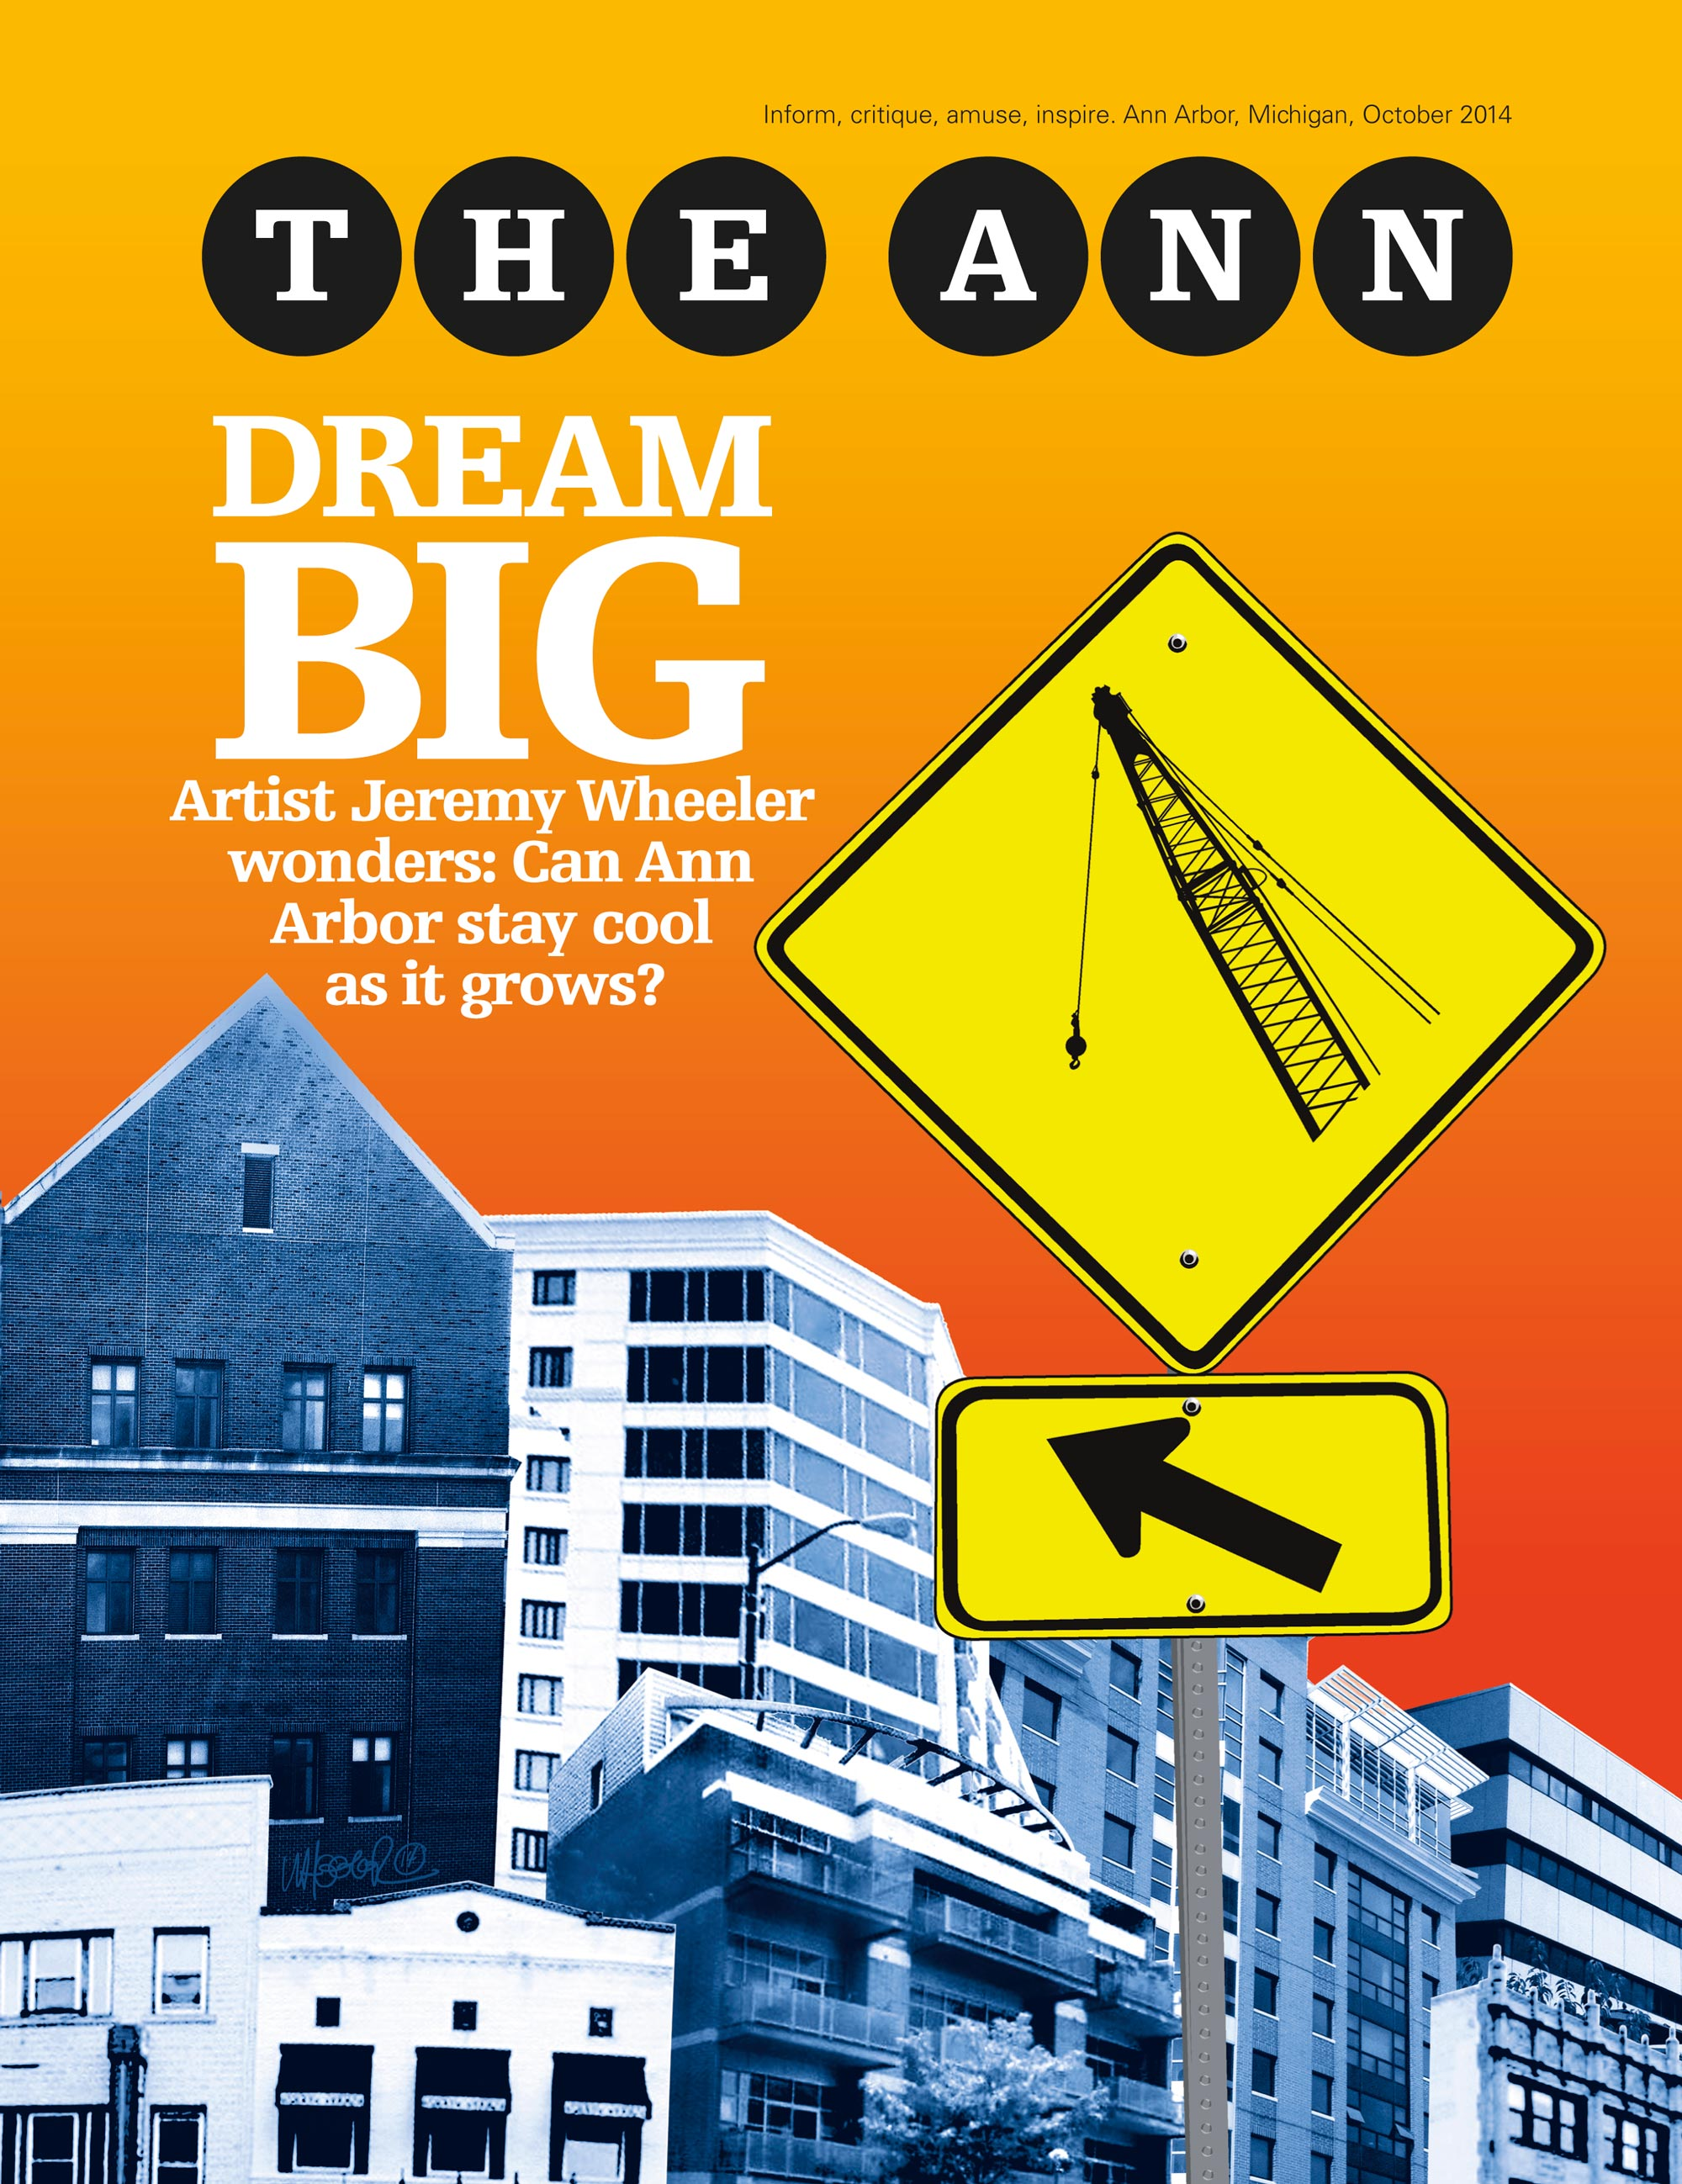 DREAM BIG  - provided a 10 page comic editorial on the future of Ann Arbor.